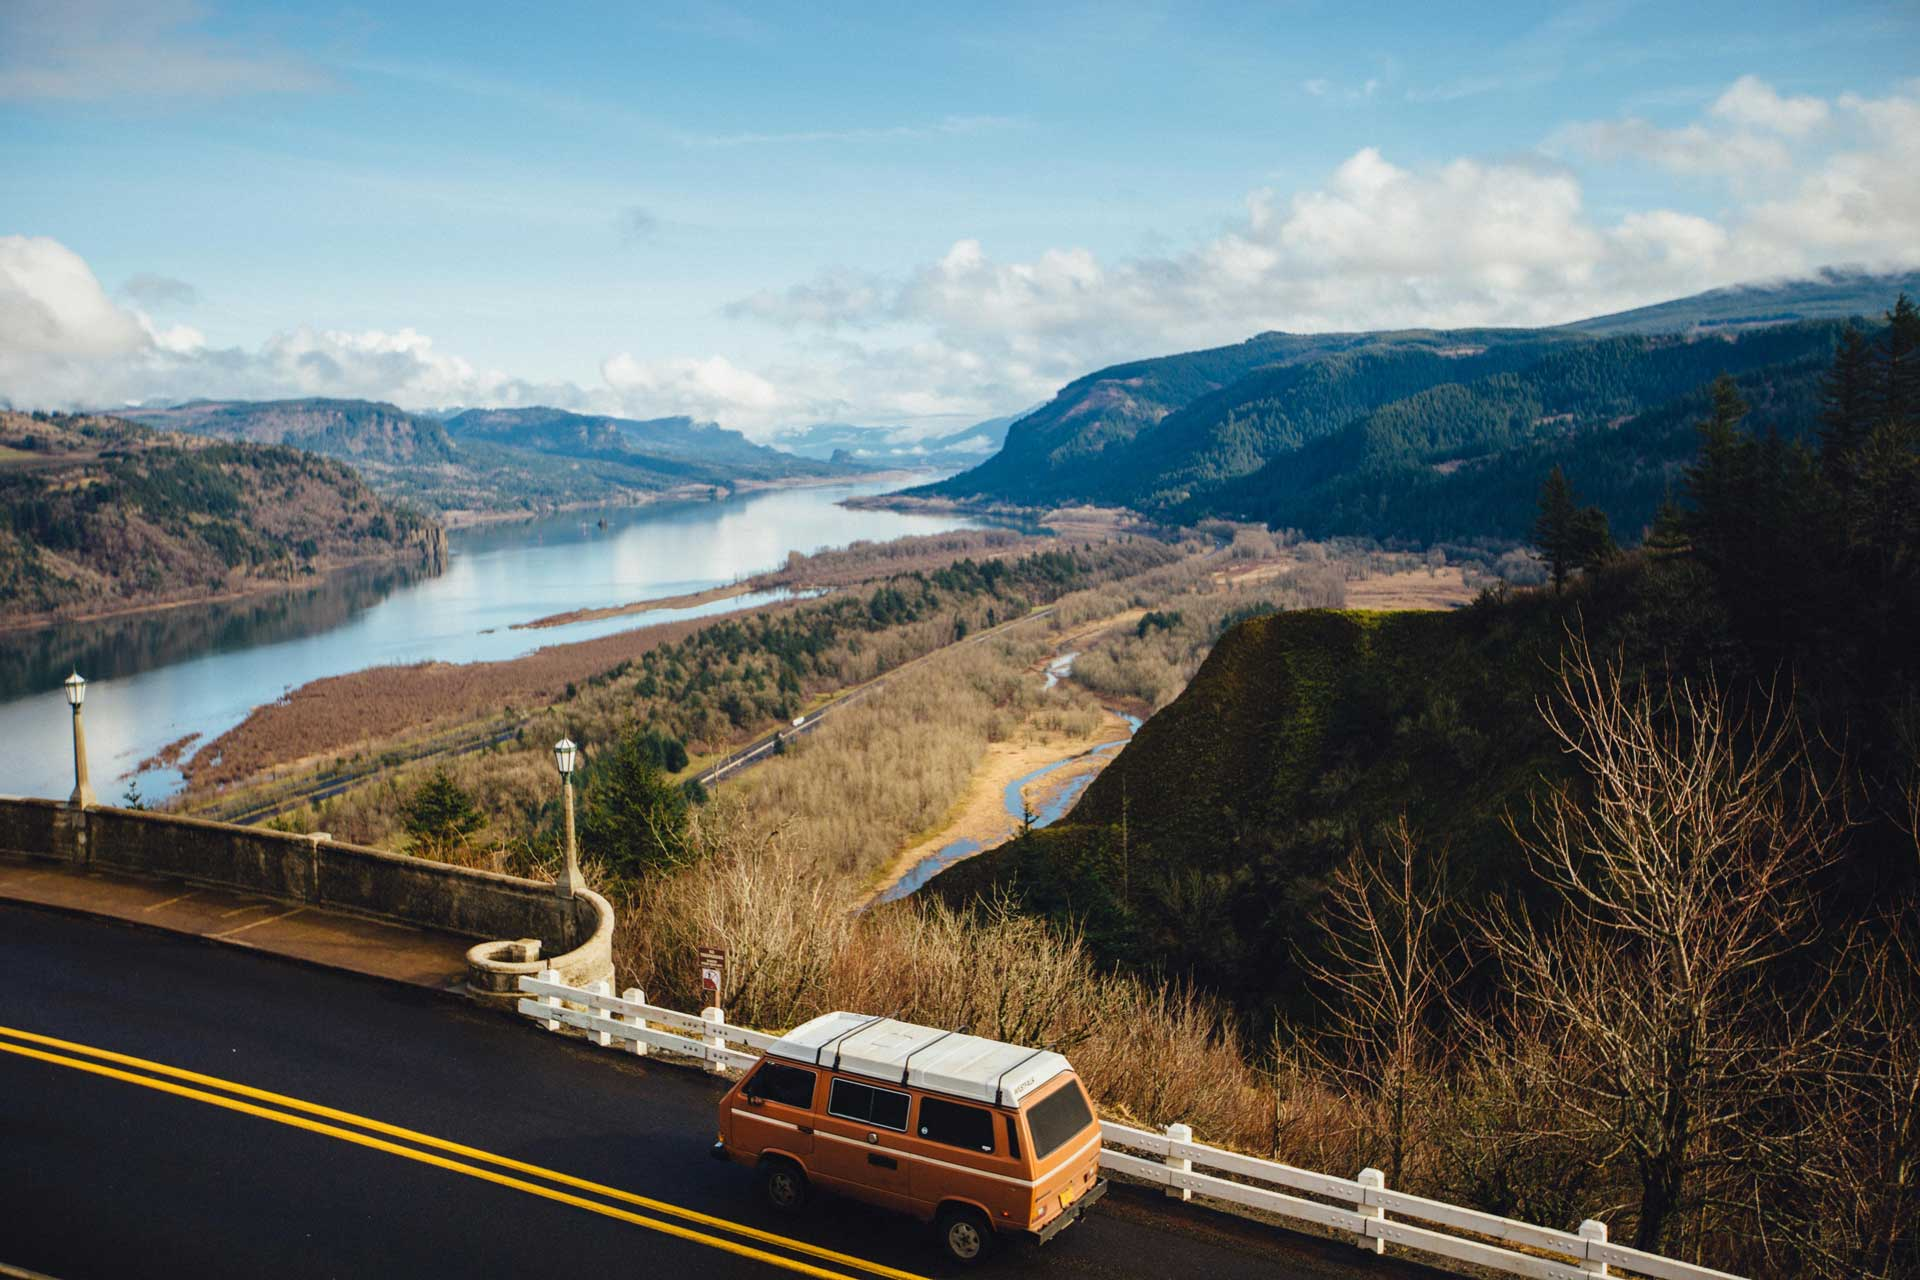 orange vintage camper van driving a paved highway looking over an open landscape with tree-covered hills and a large river